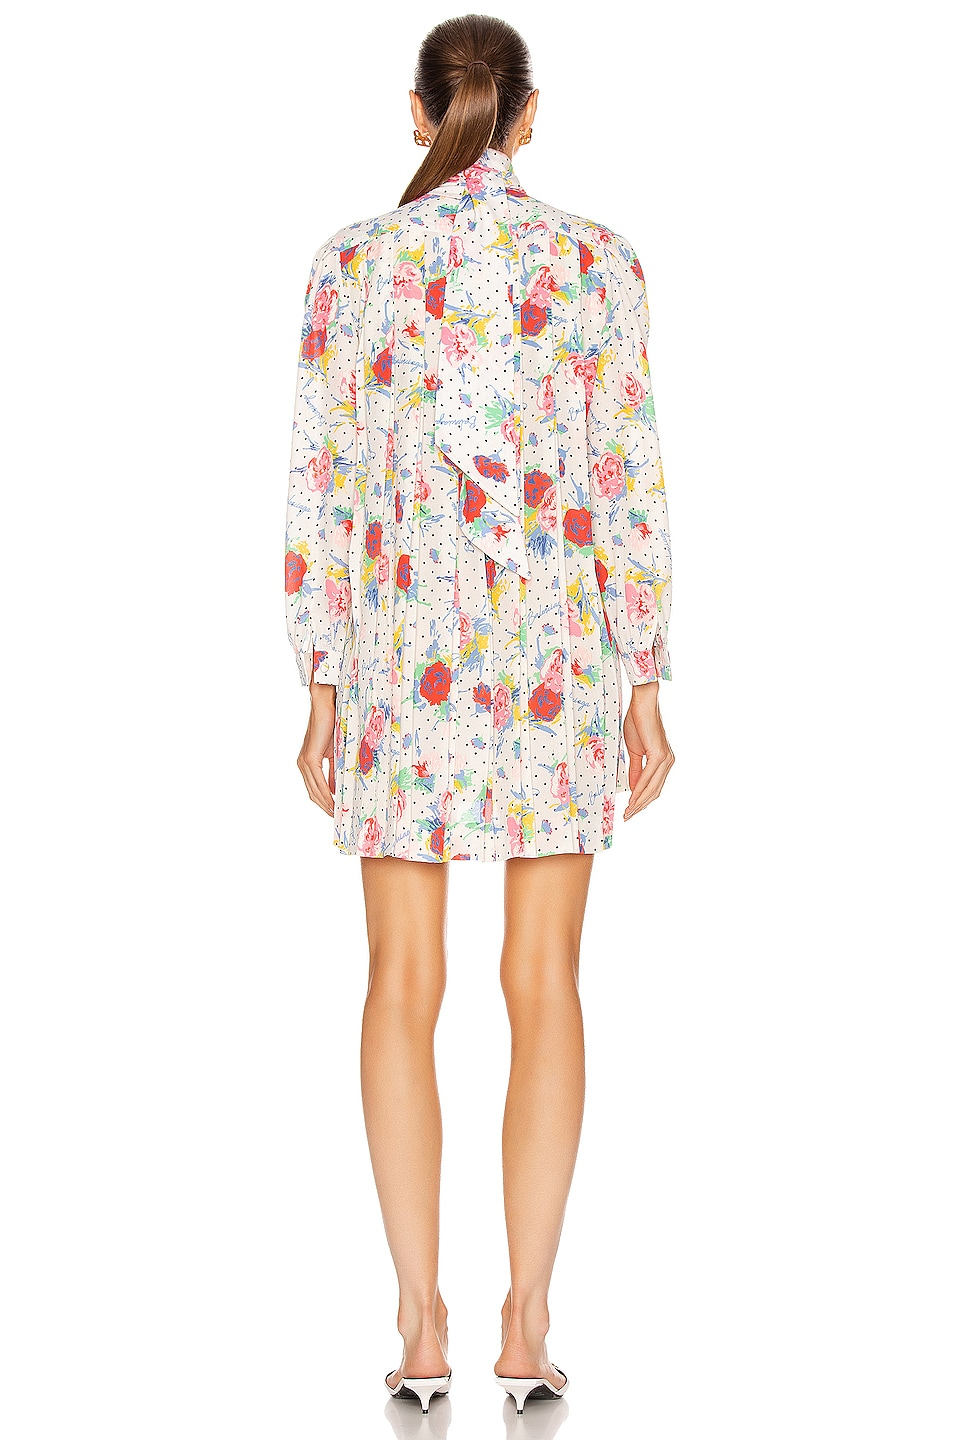 Image 4 of Balenciaga Polka Dot Floral Pleated Babydoll Top in Cream & Red